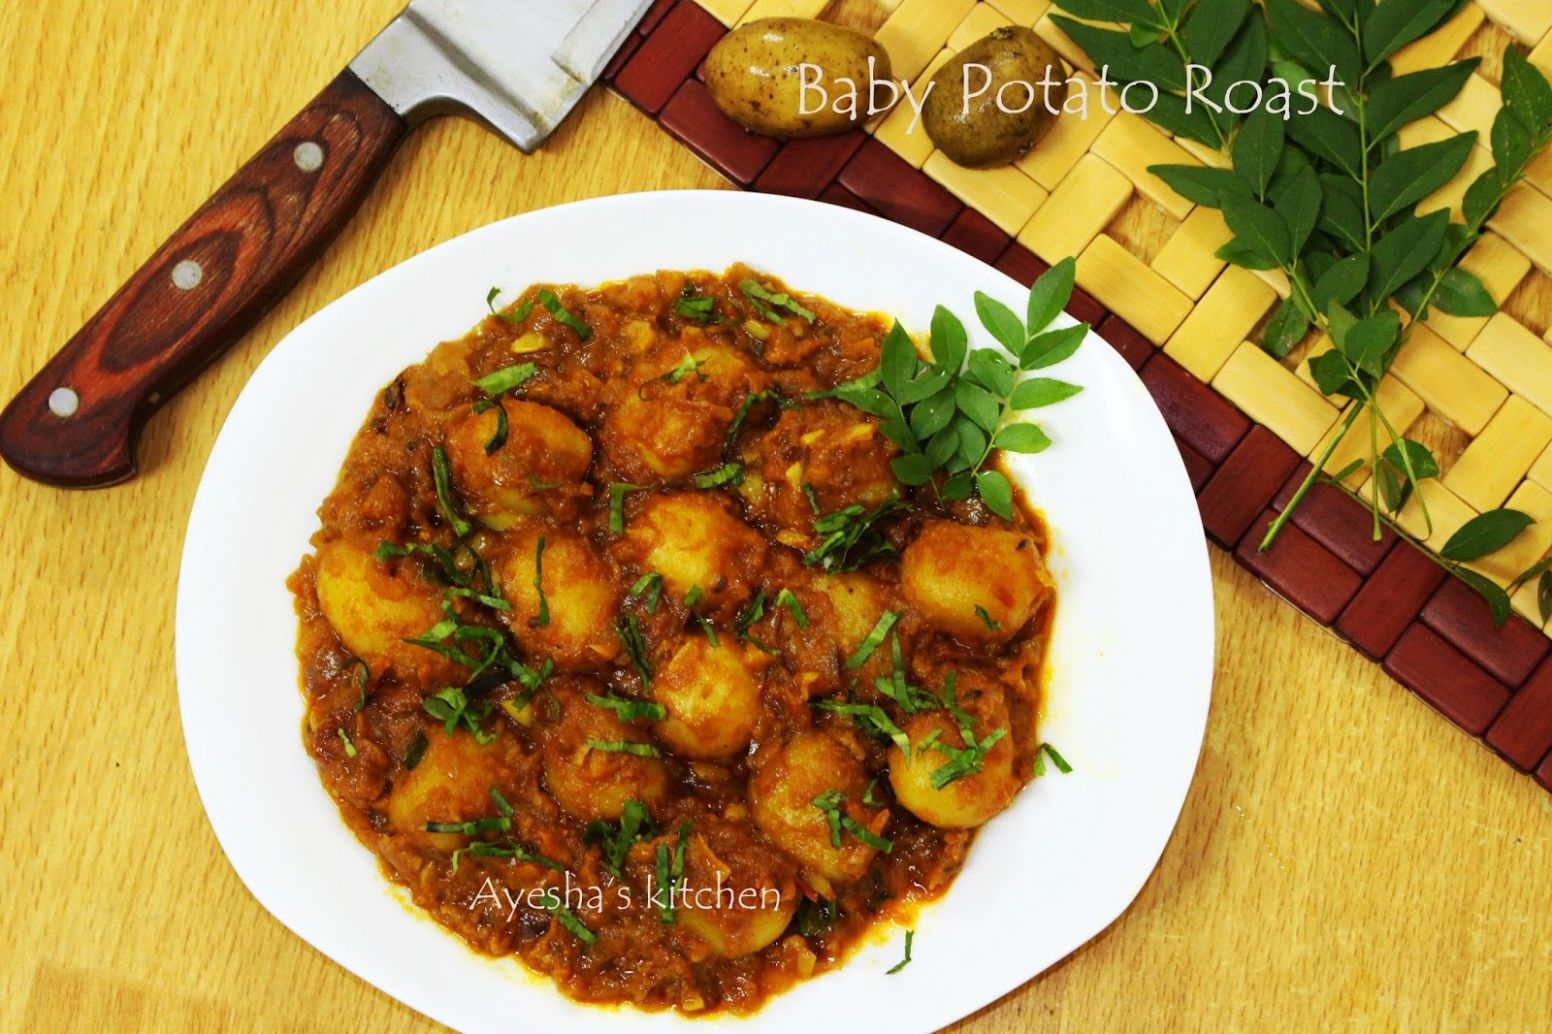 SPICY INDIAN CURRY WITH BABY POTATOES - BABY POTATO ROASTED RECIPES - Potato Recipes For Babies